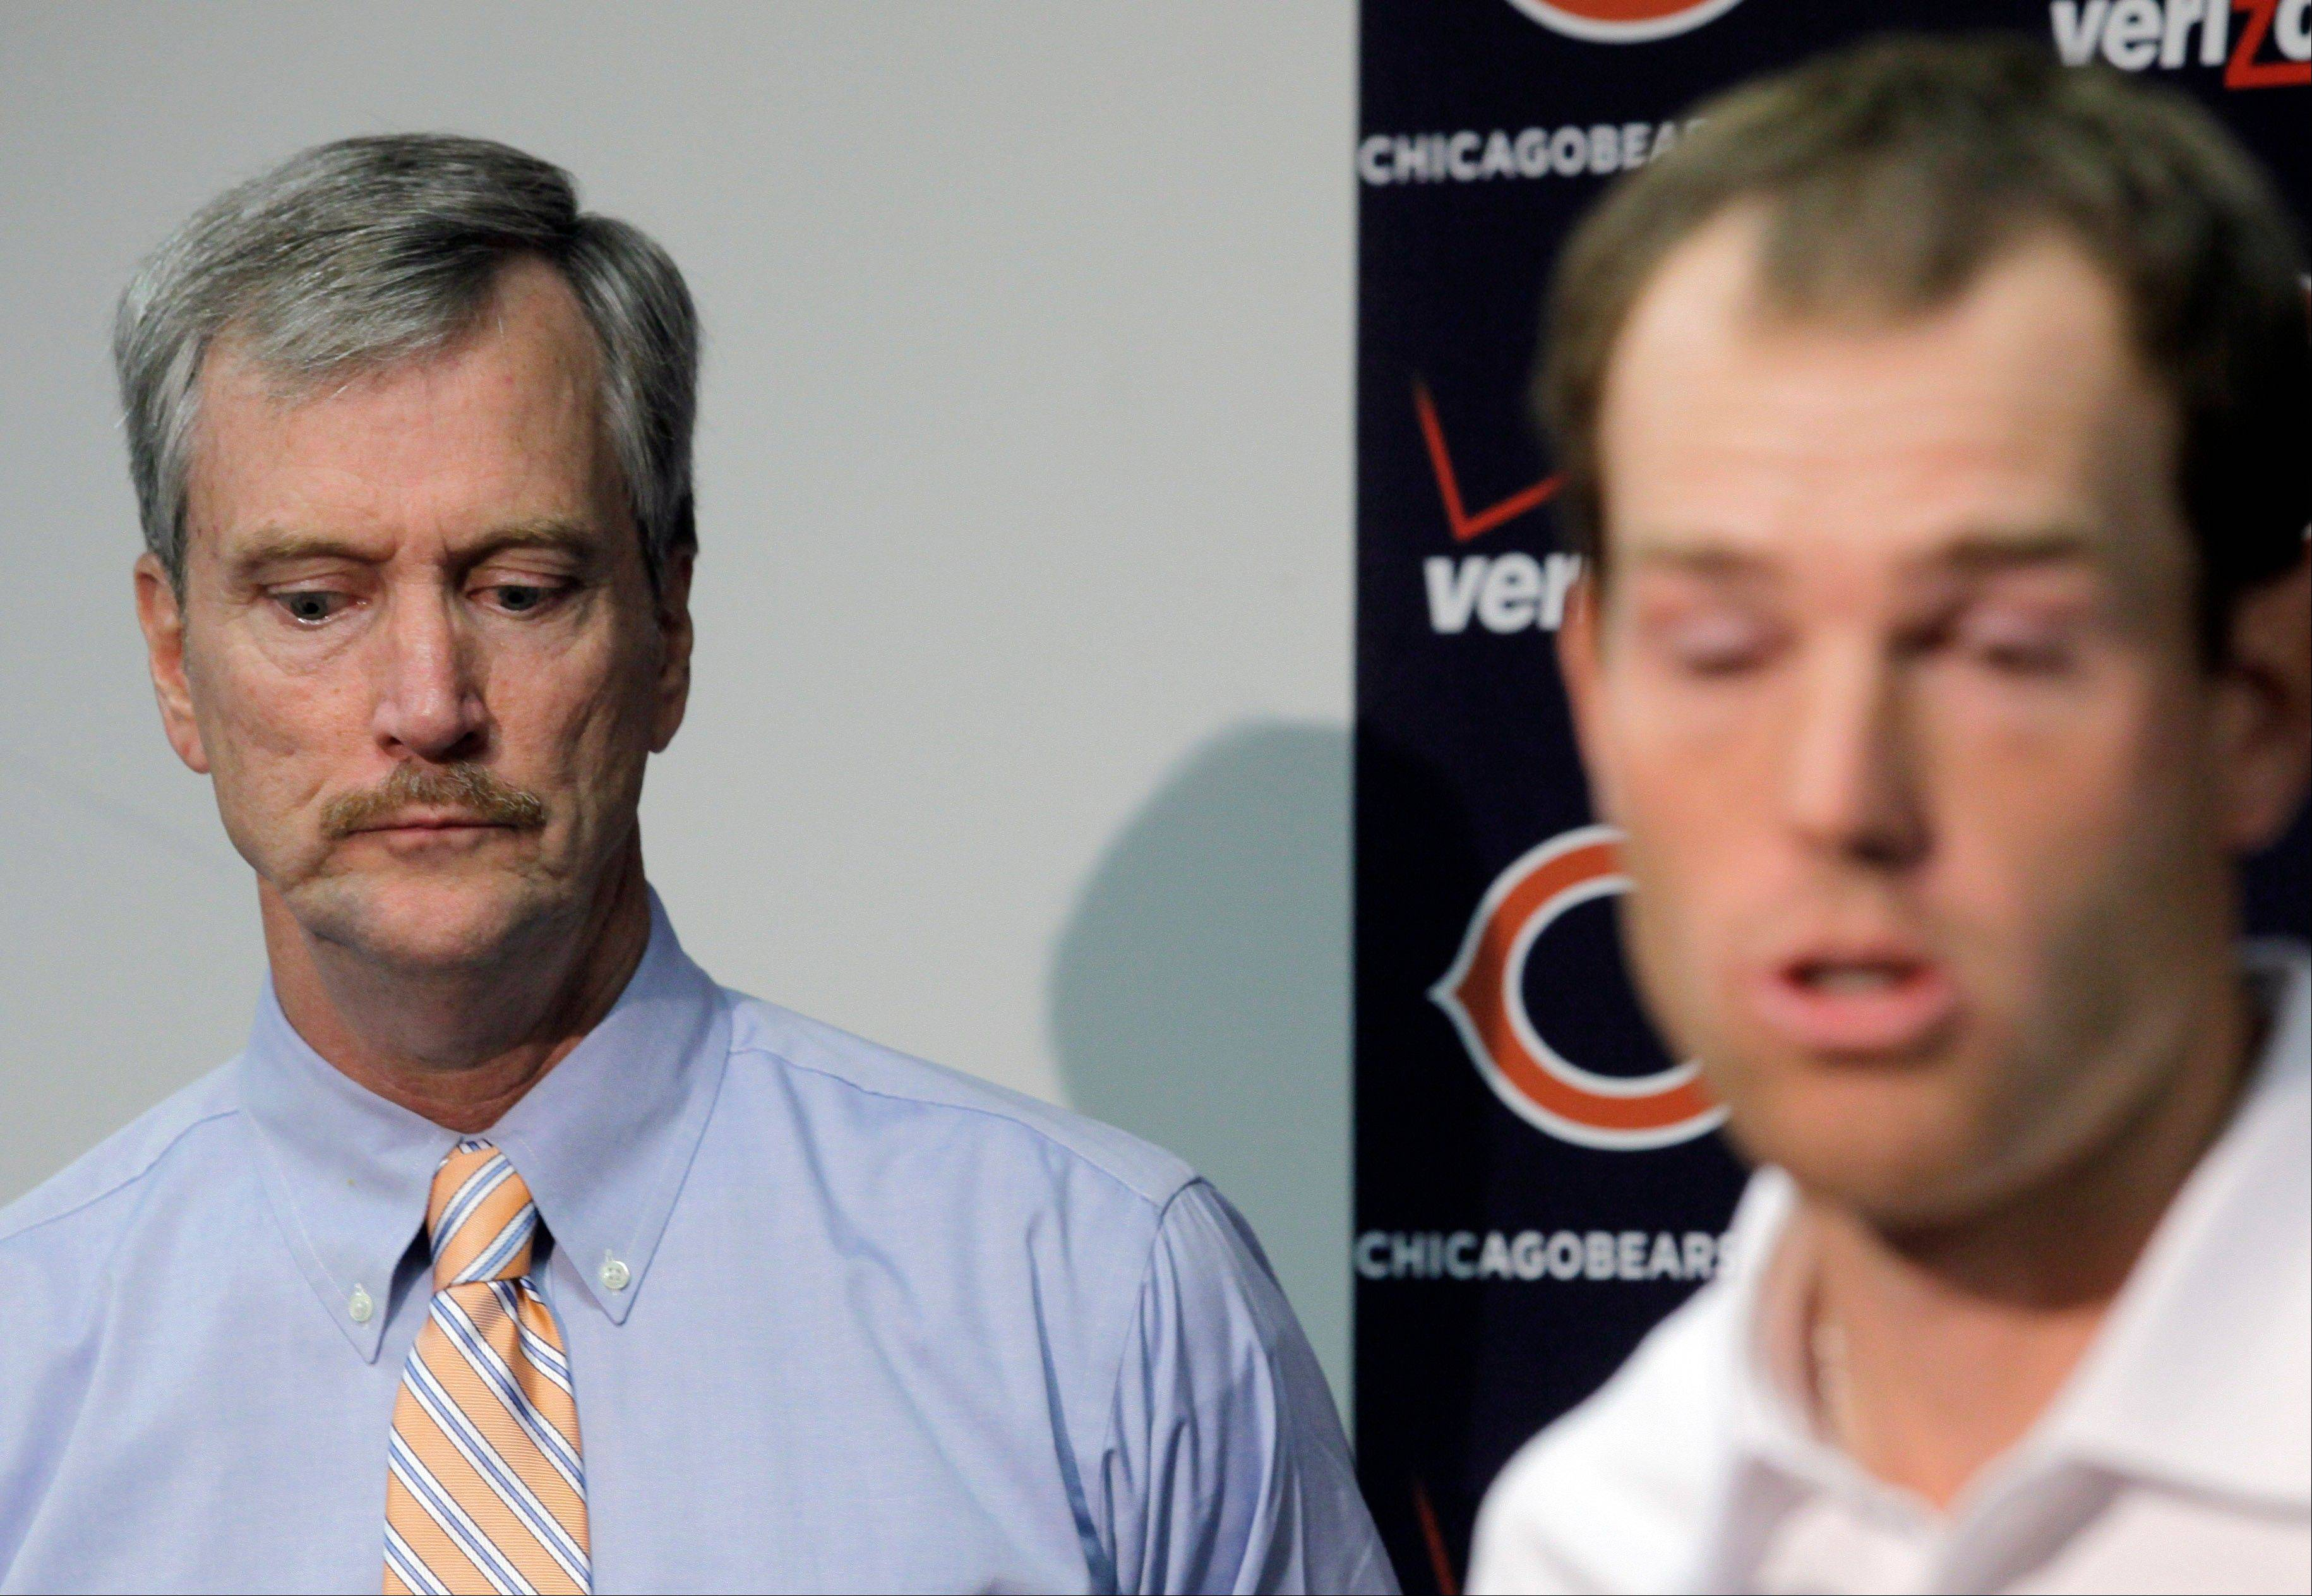 Bears chairman George McCaskey, left, listens to kicker and union representative Robbie Gould speak at a news conference at Halas Hall on Tuesday.